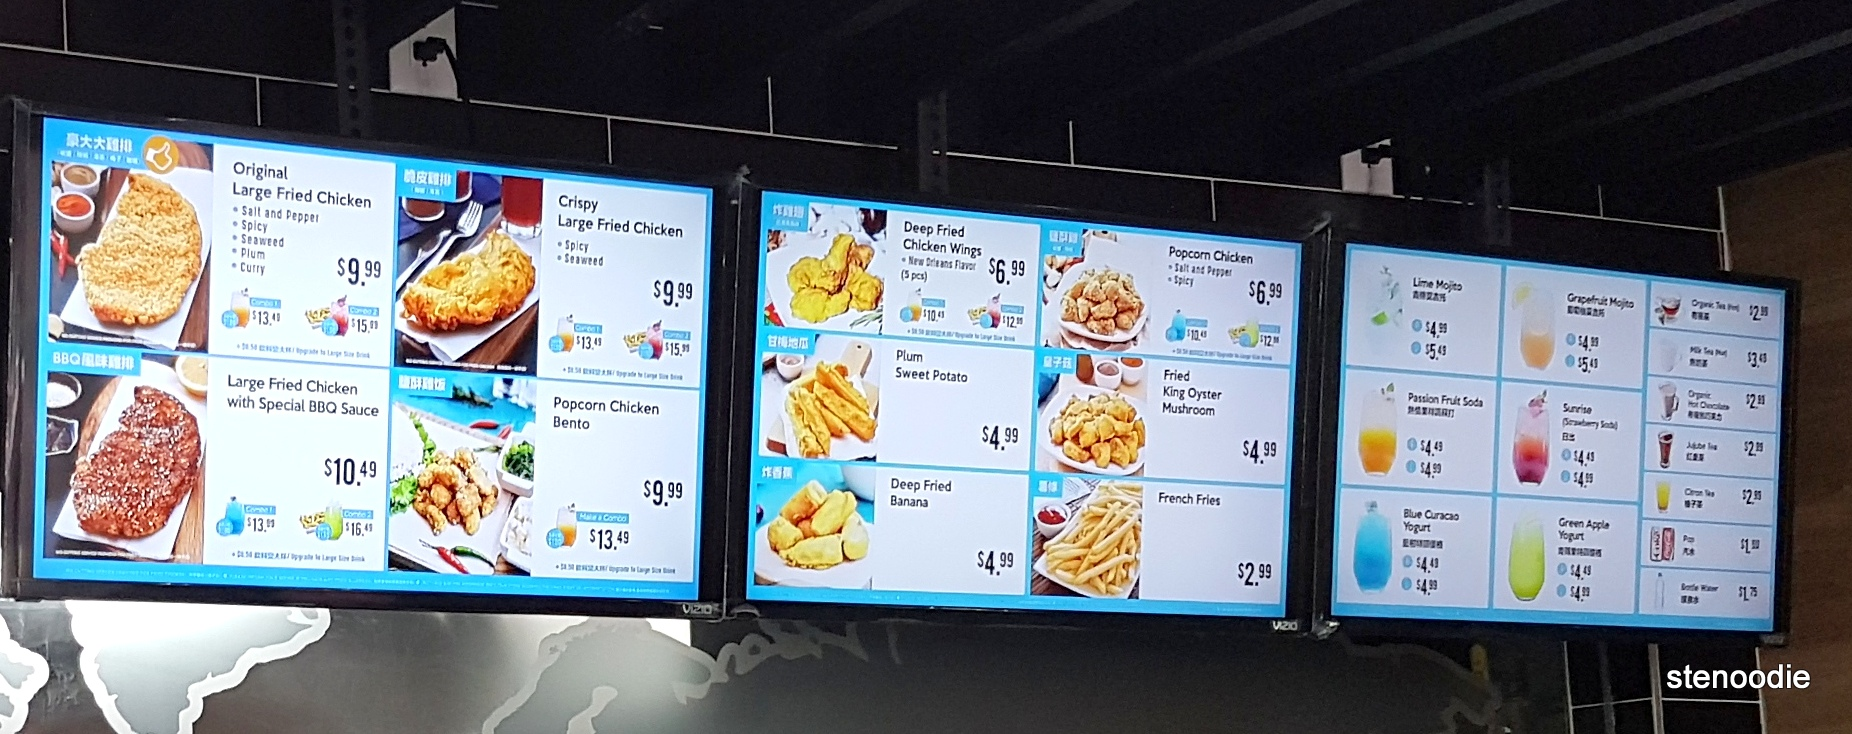 Hot Star Large Fried Chicken menu and prices